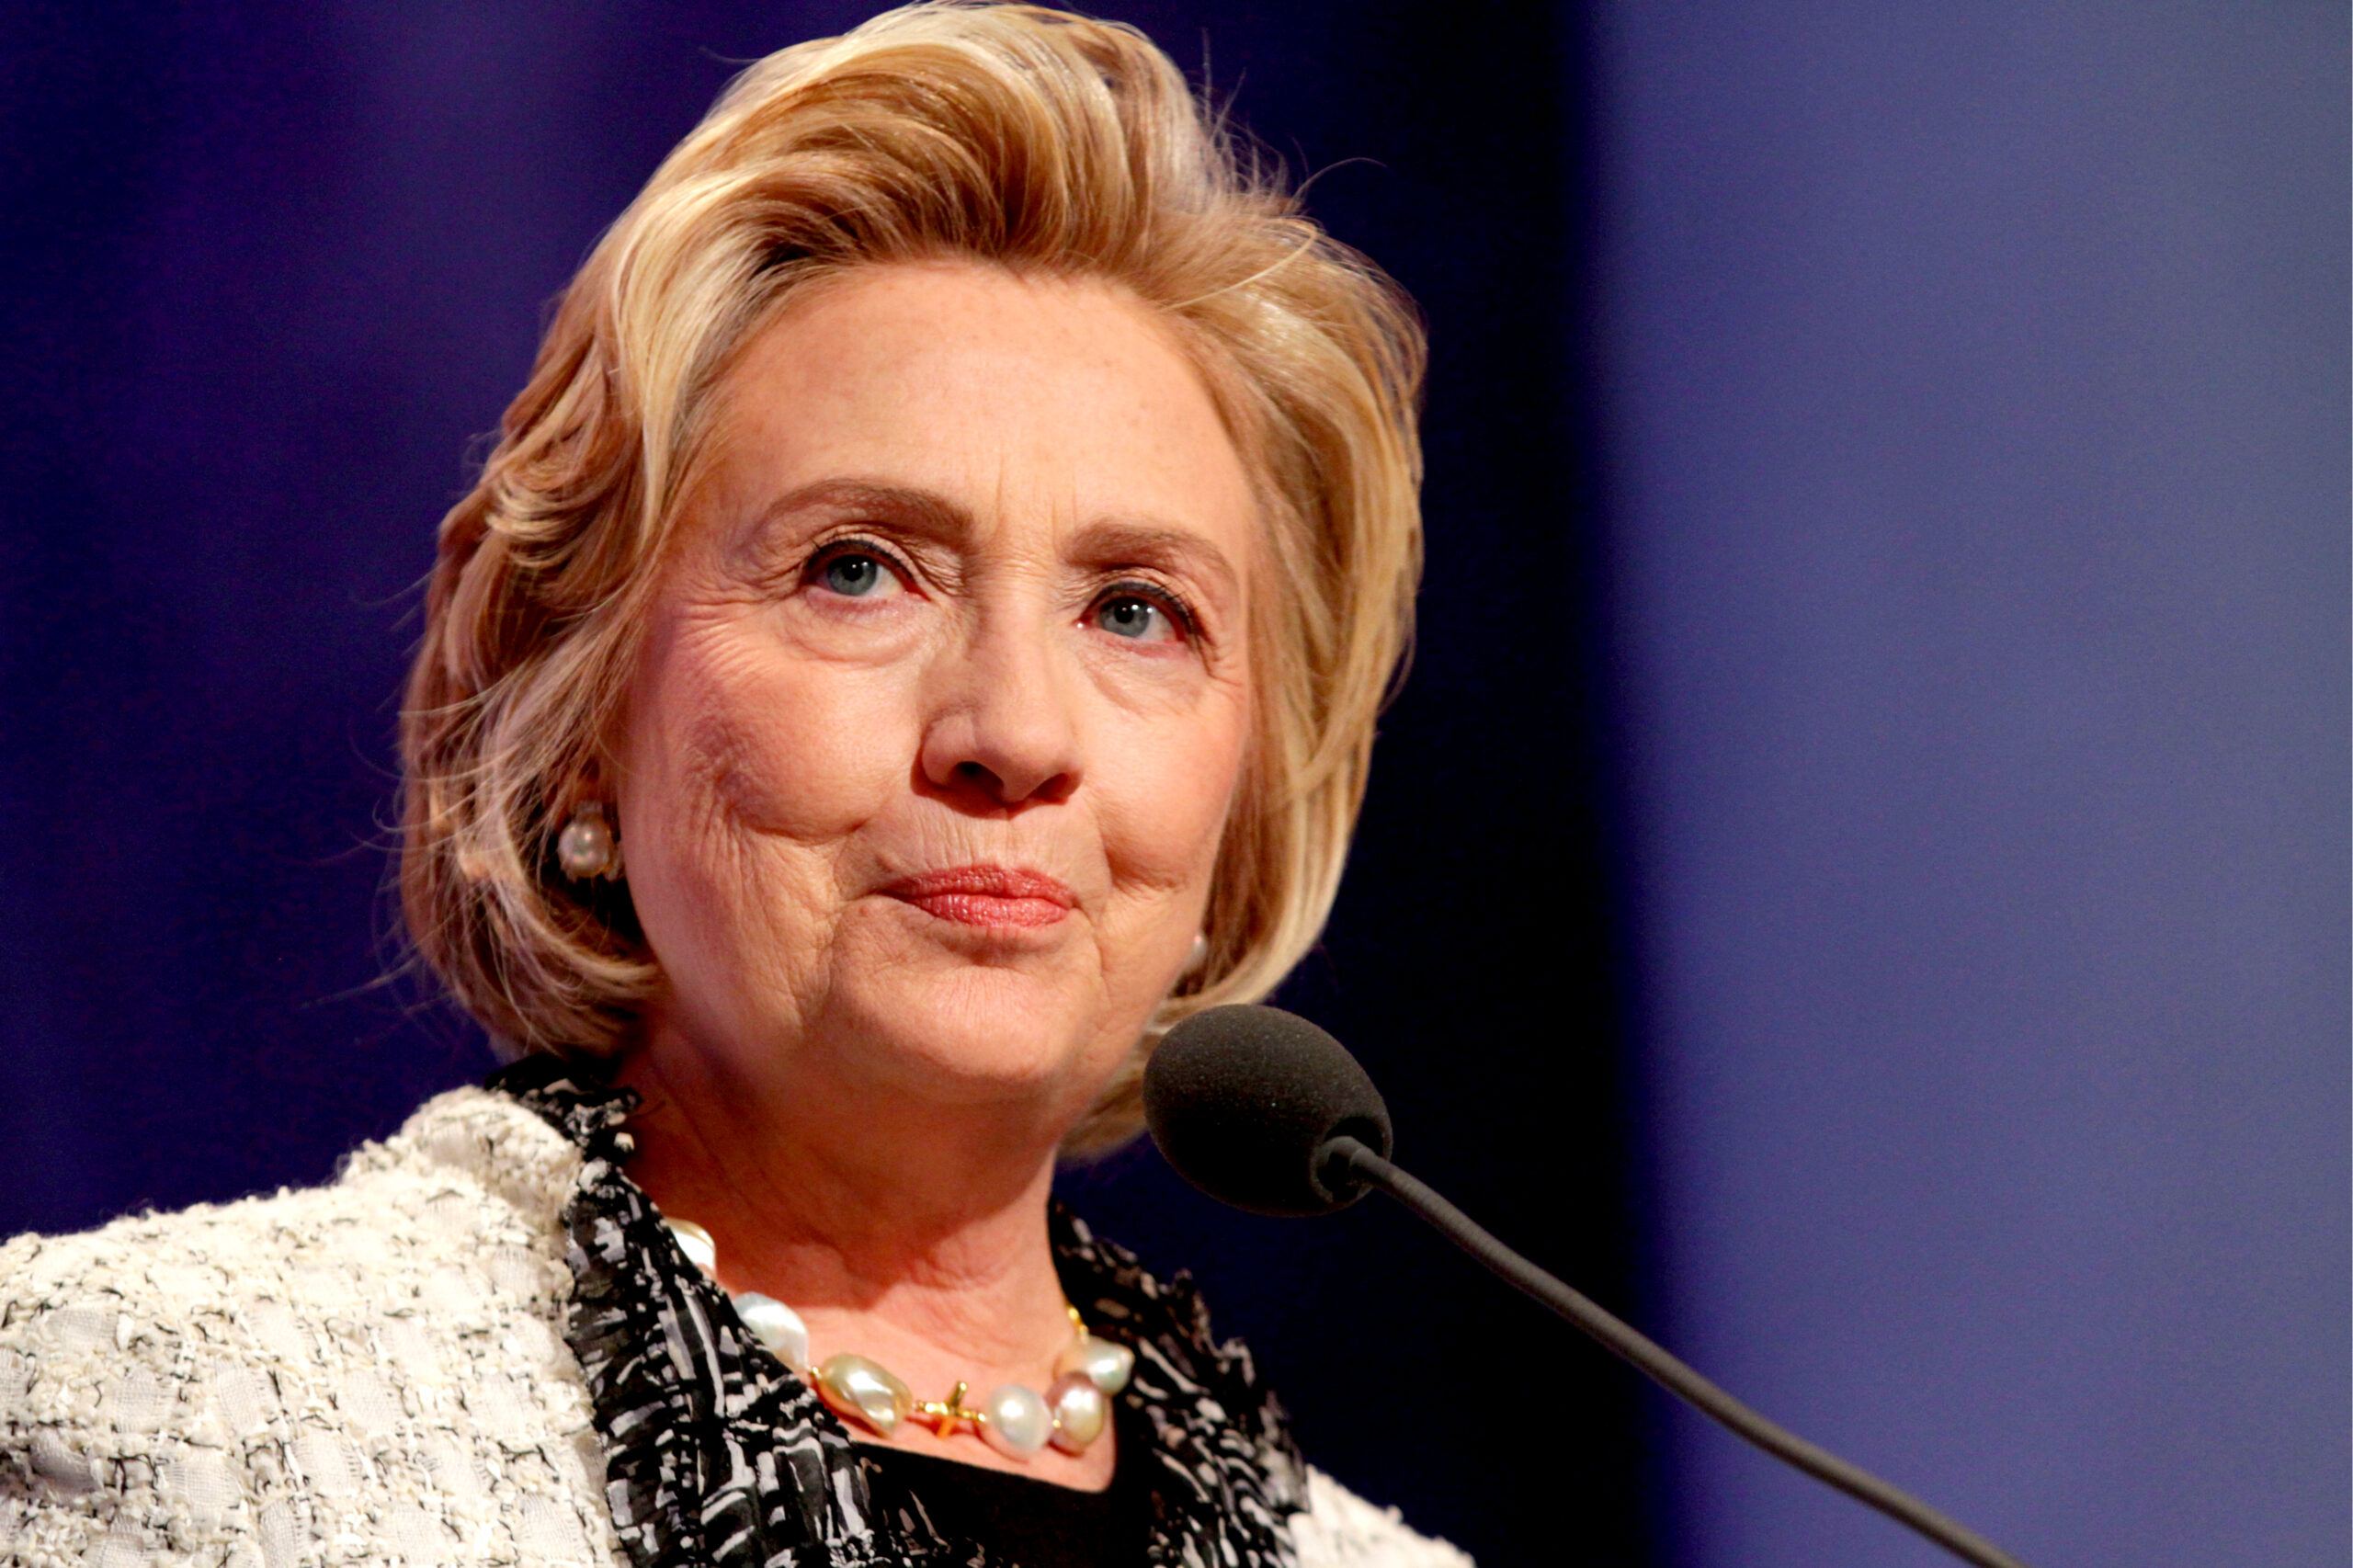 WATCH: Hillary Clinton Joins The Electoral College